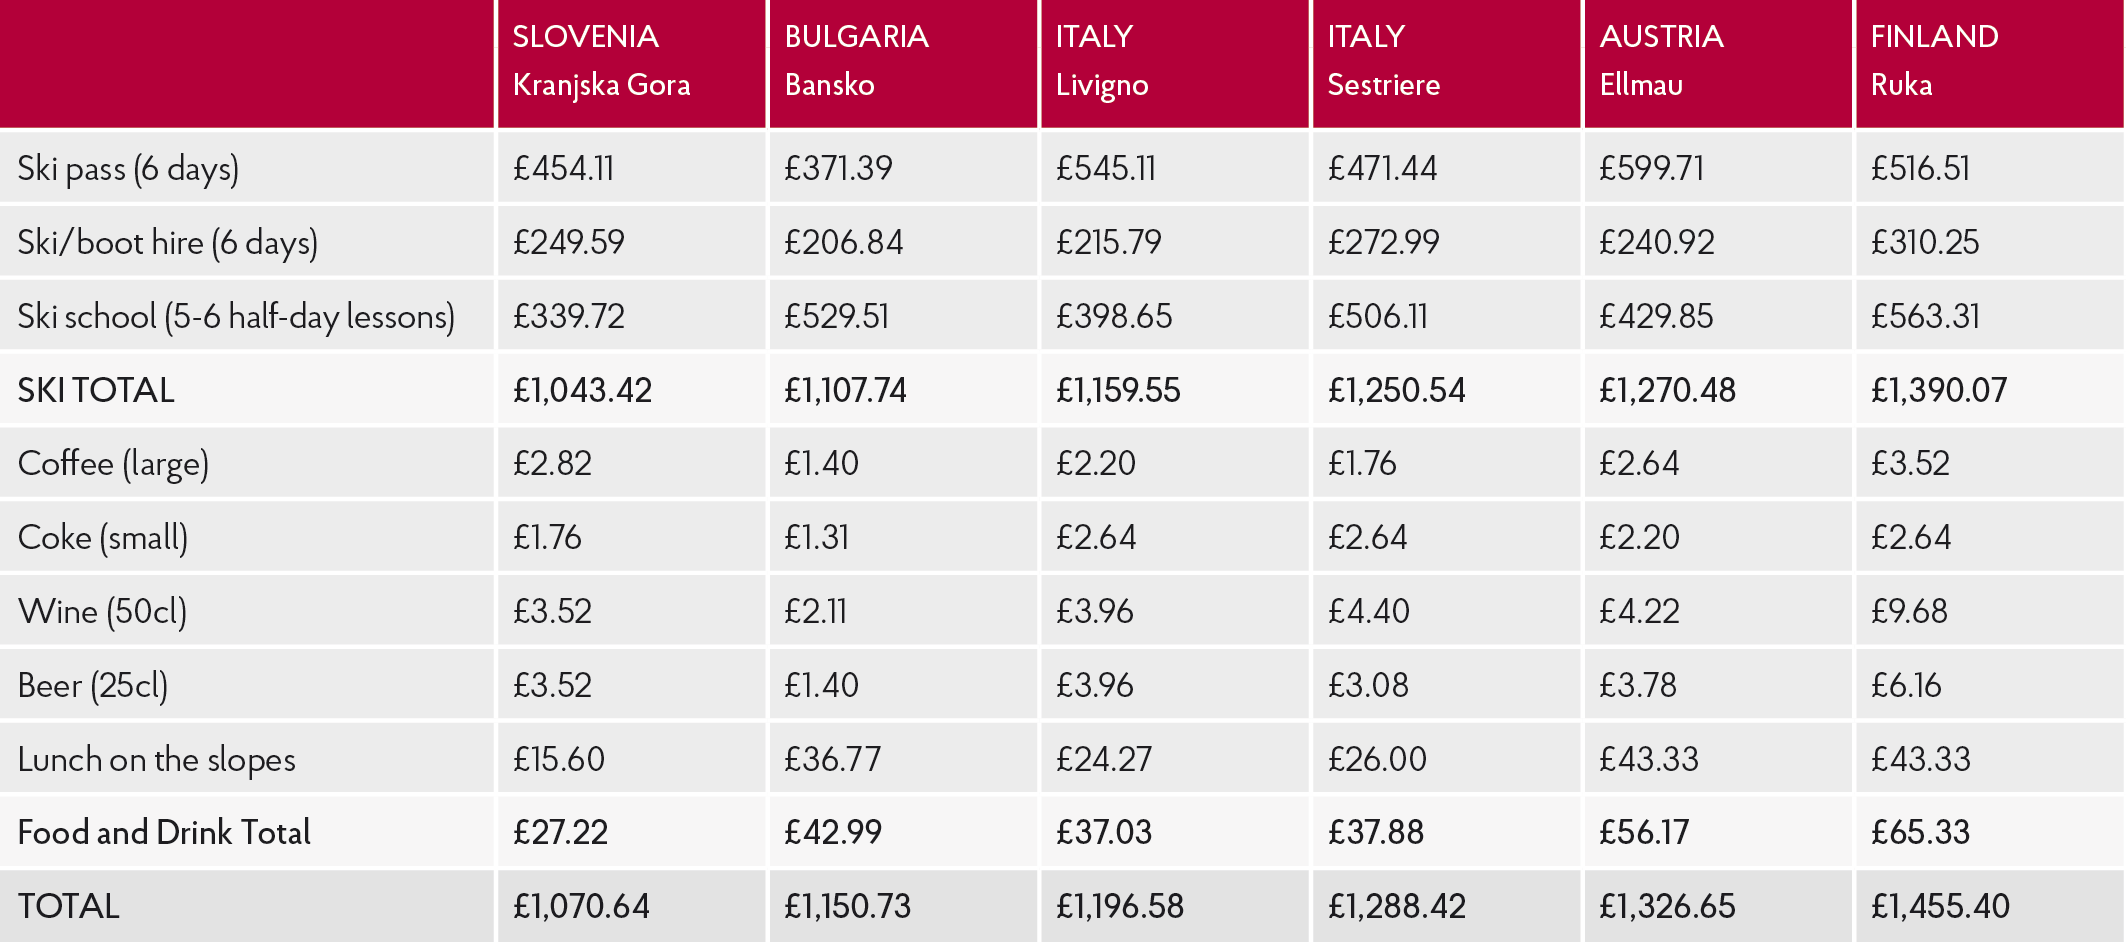 European ski resort price comparison table including Italy and Bulgaria